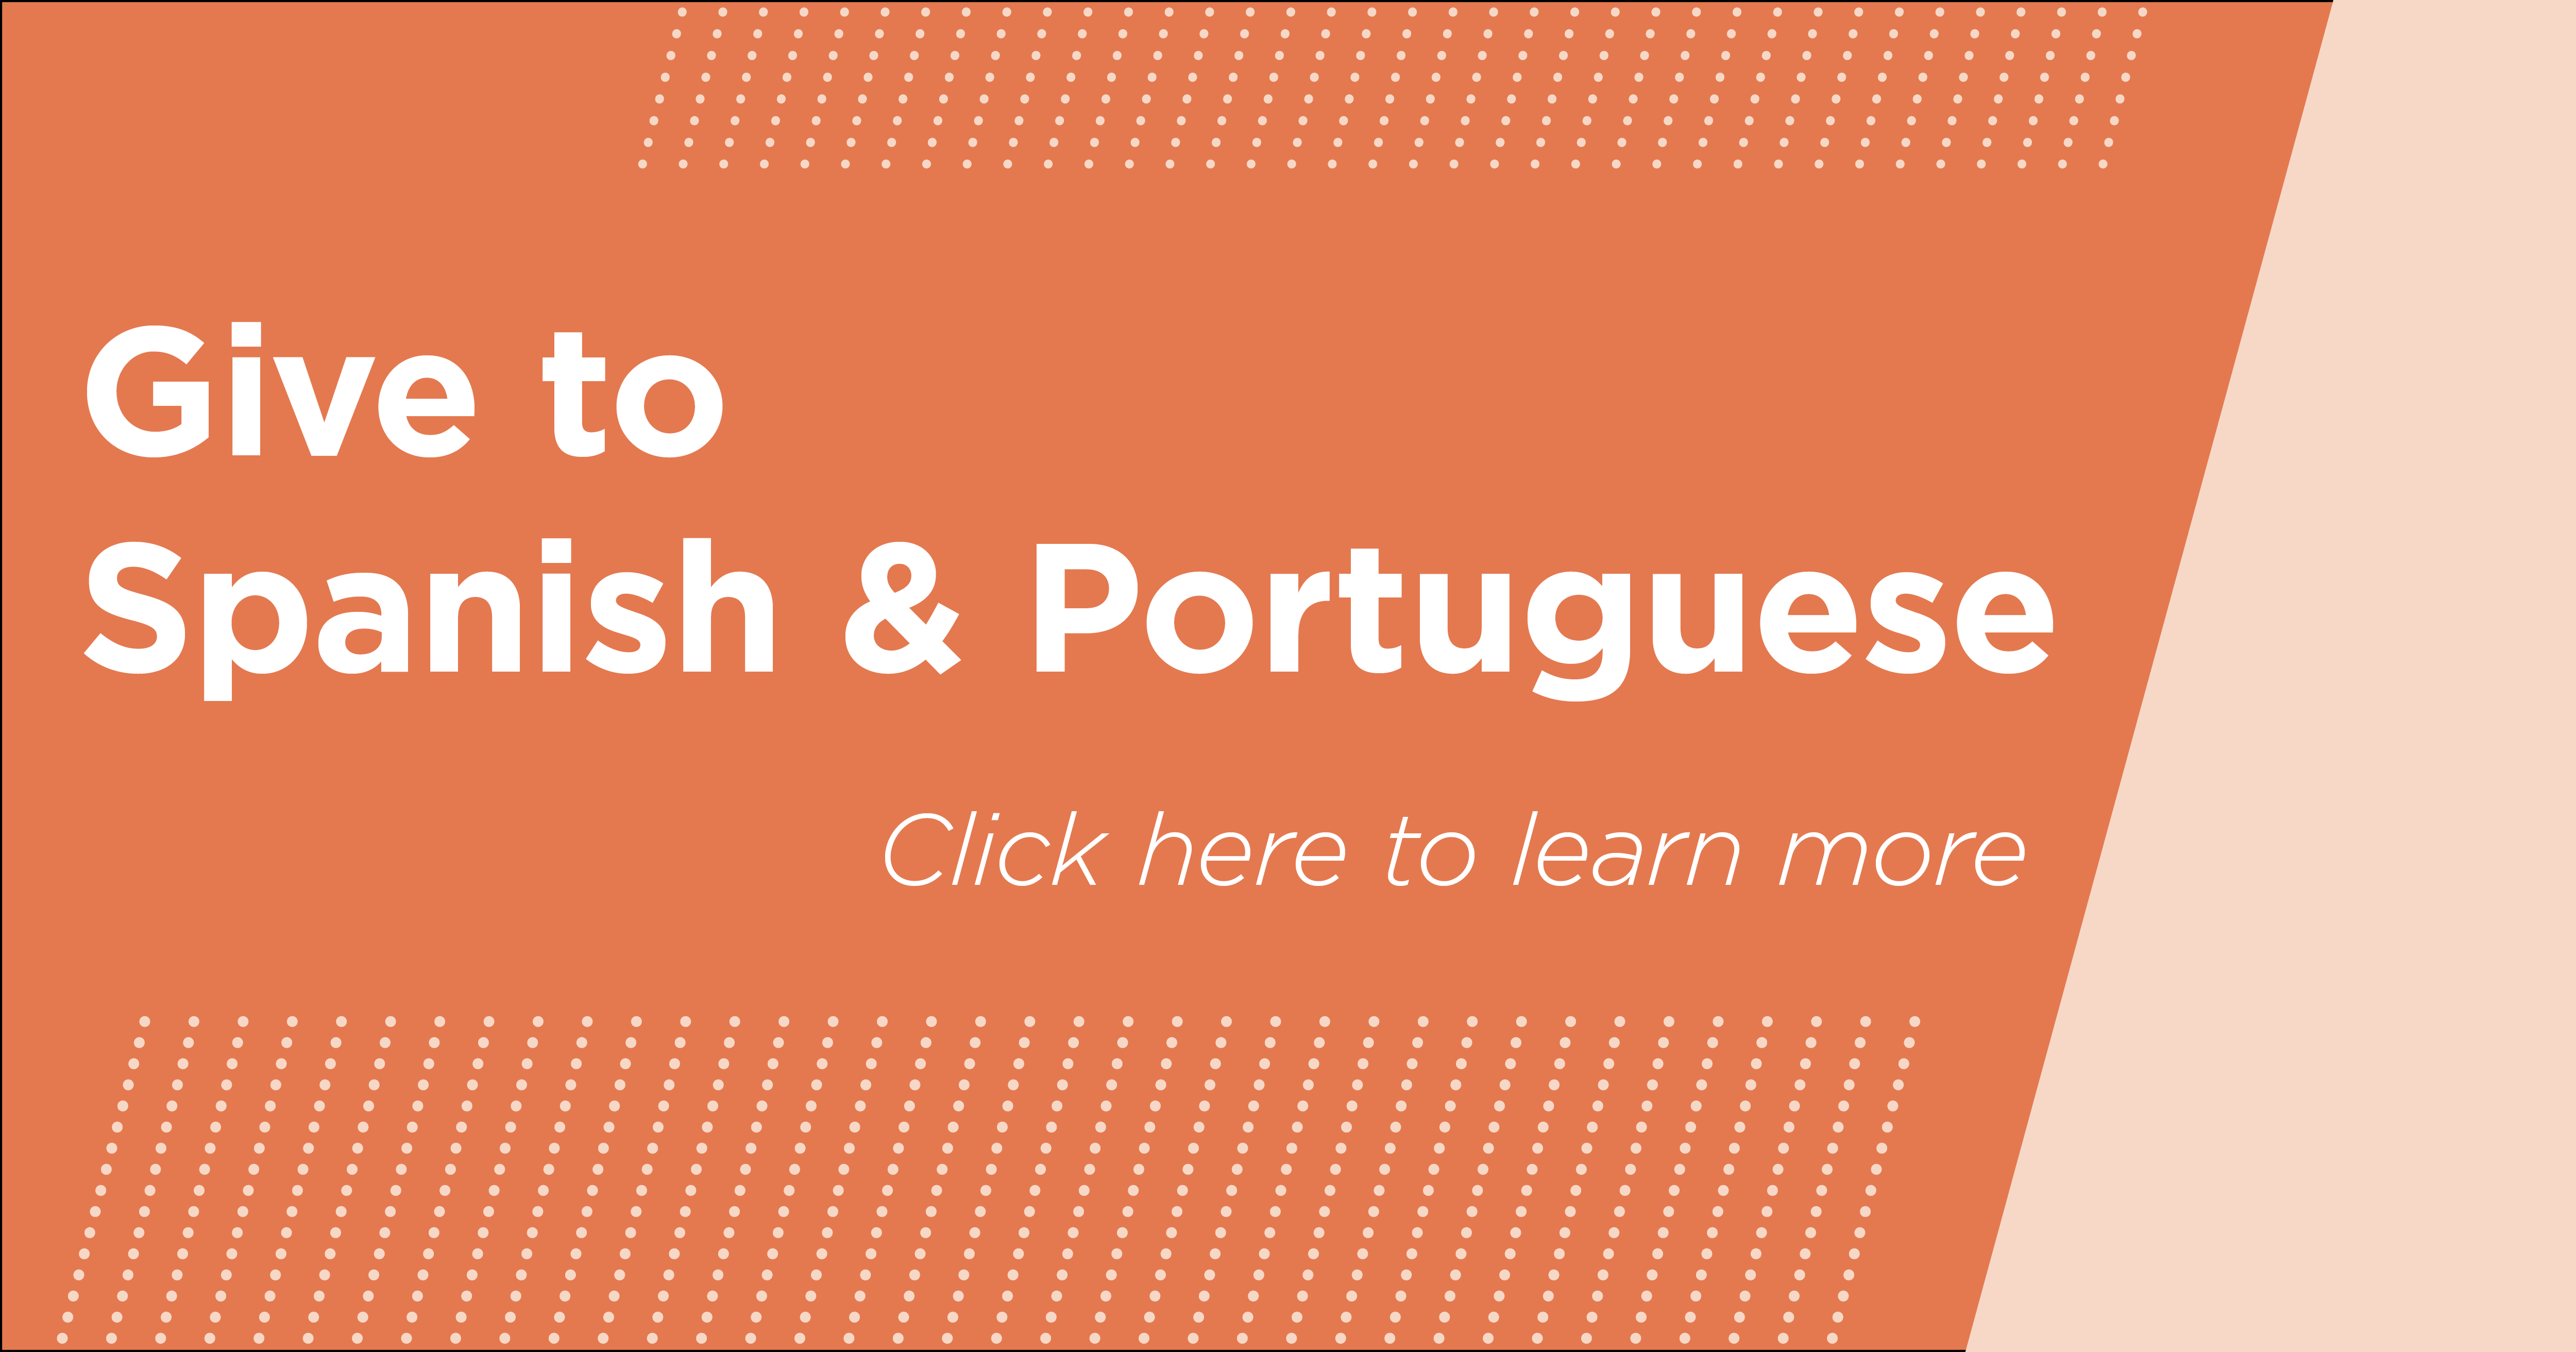 Give to Spanish & Portuguese